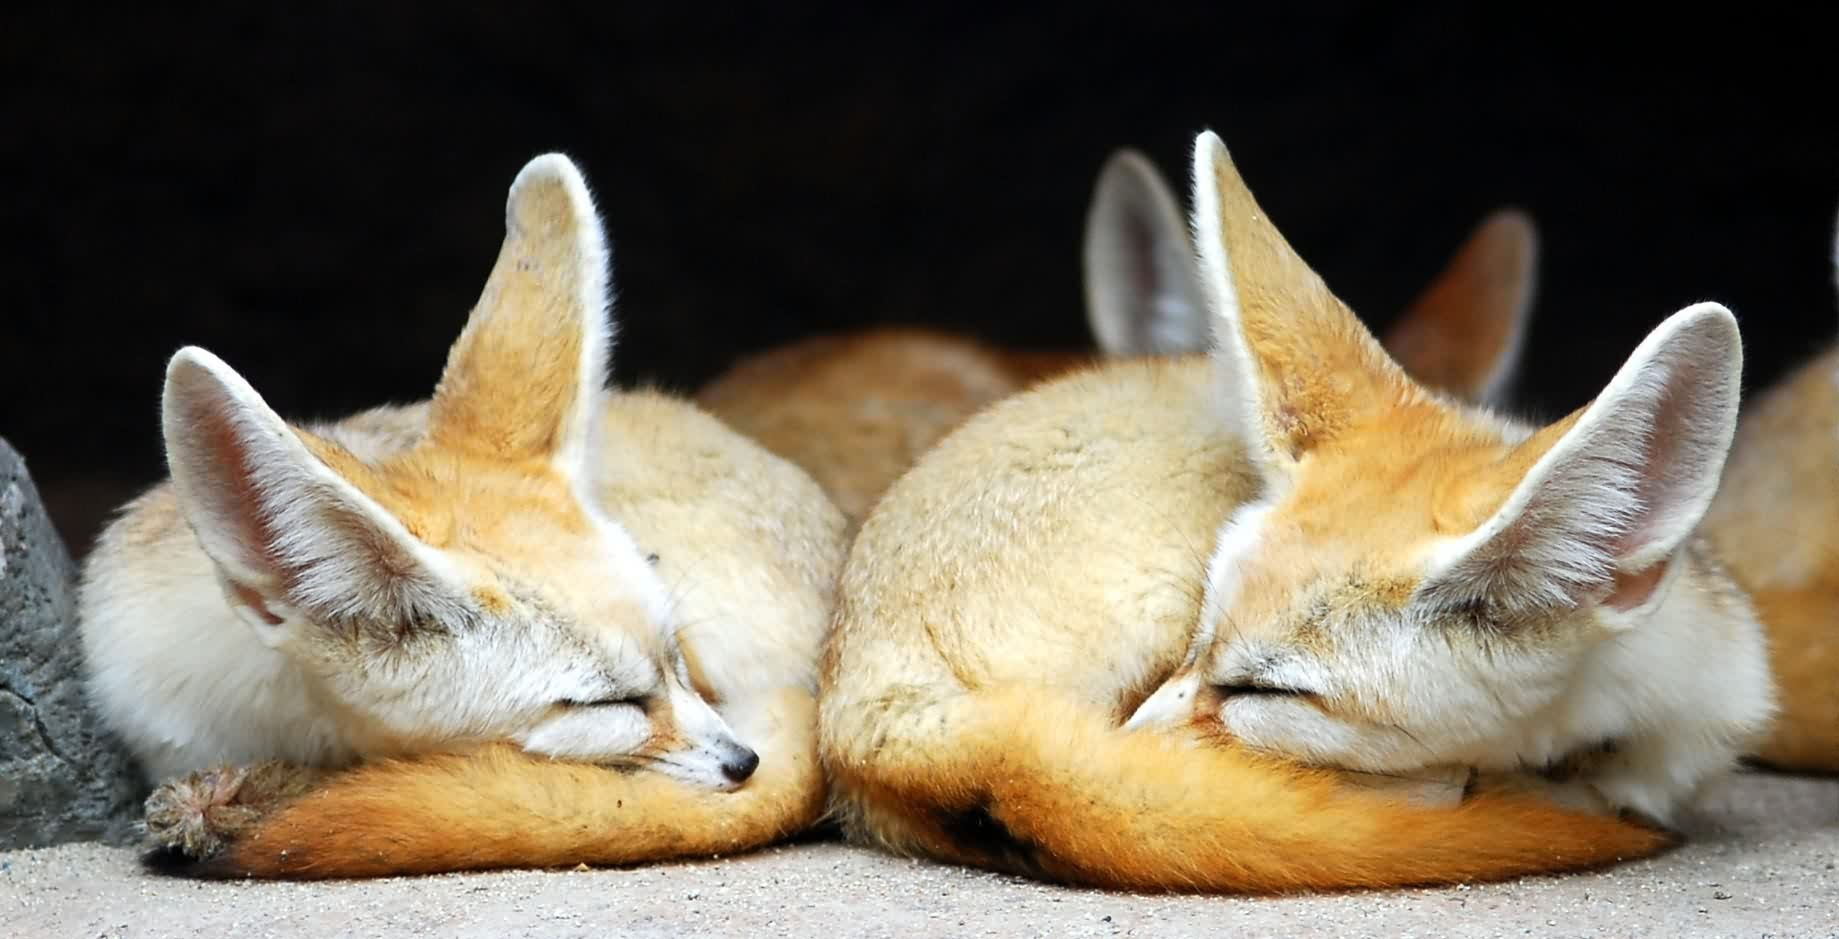 Fennec Fox Wallpapers Hd 1839x939 Wallpaper Teahub Io